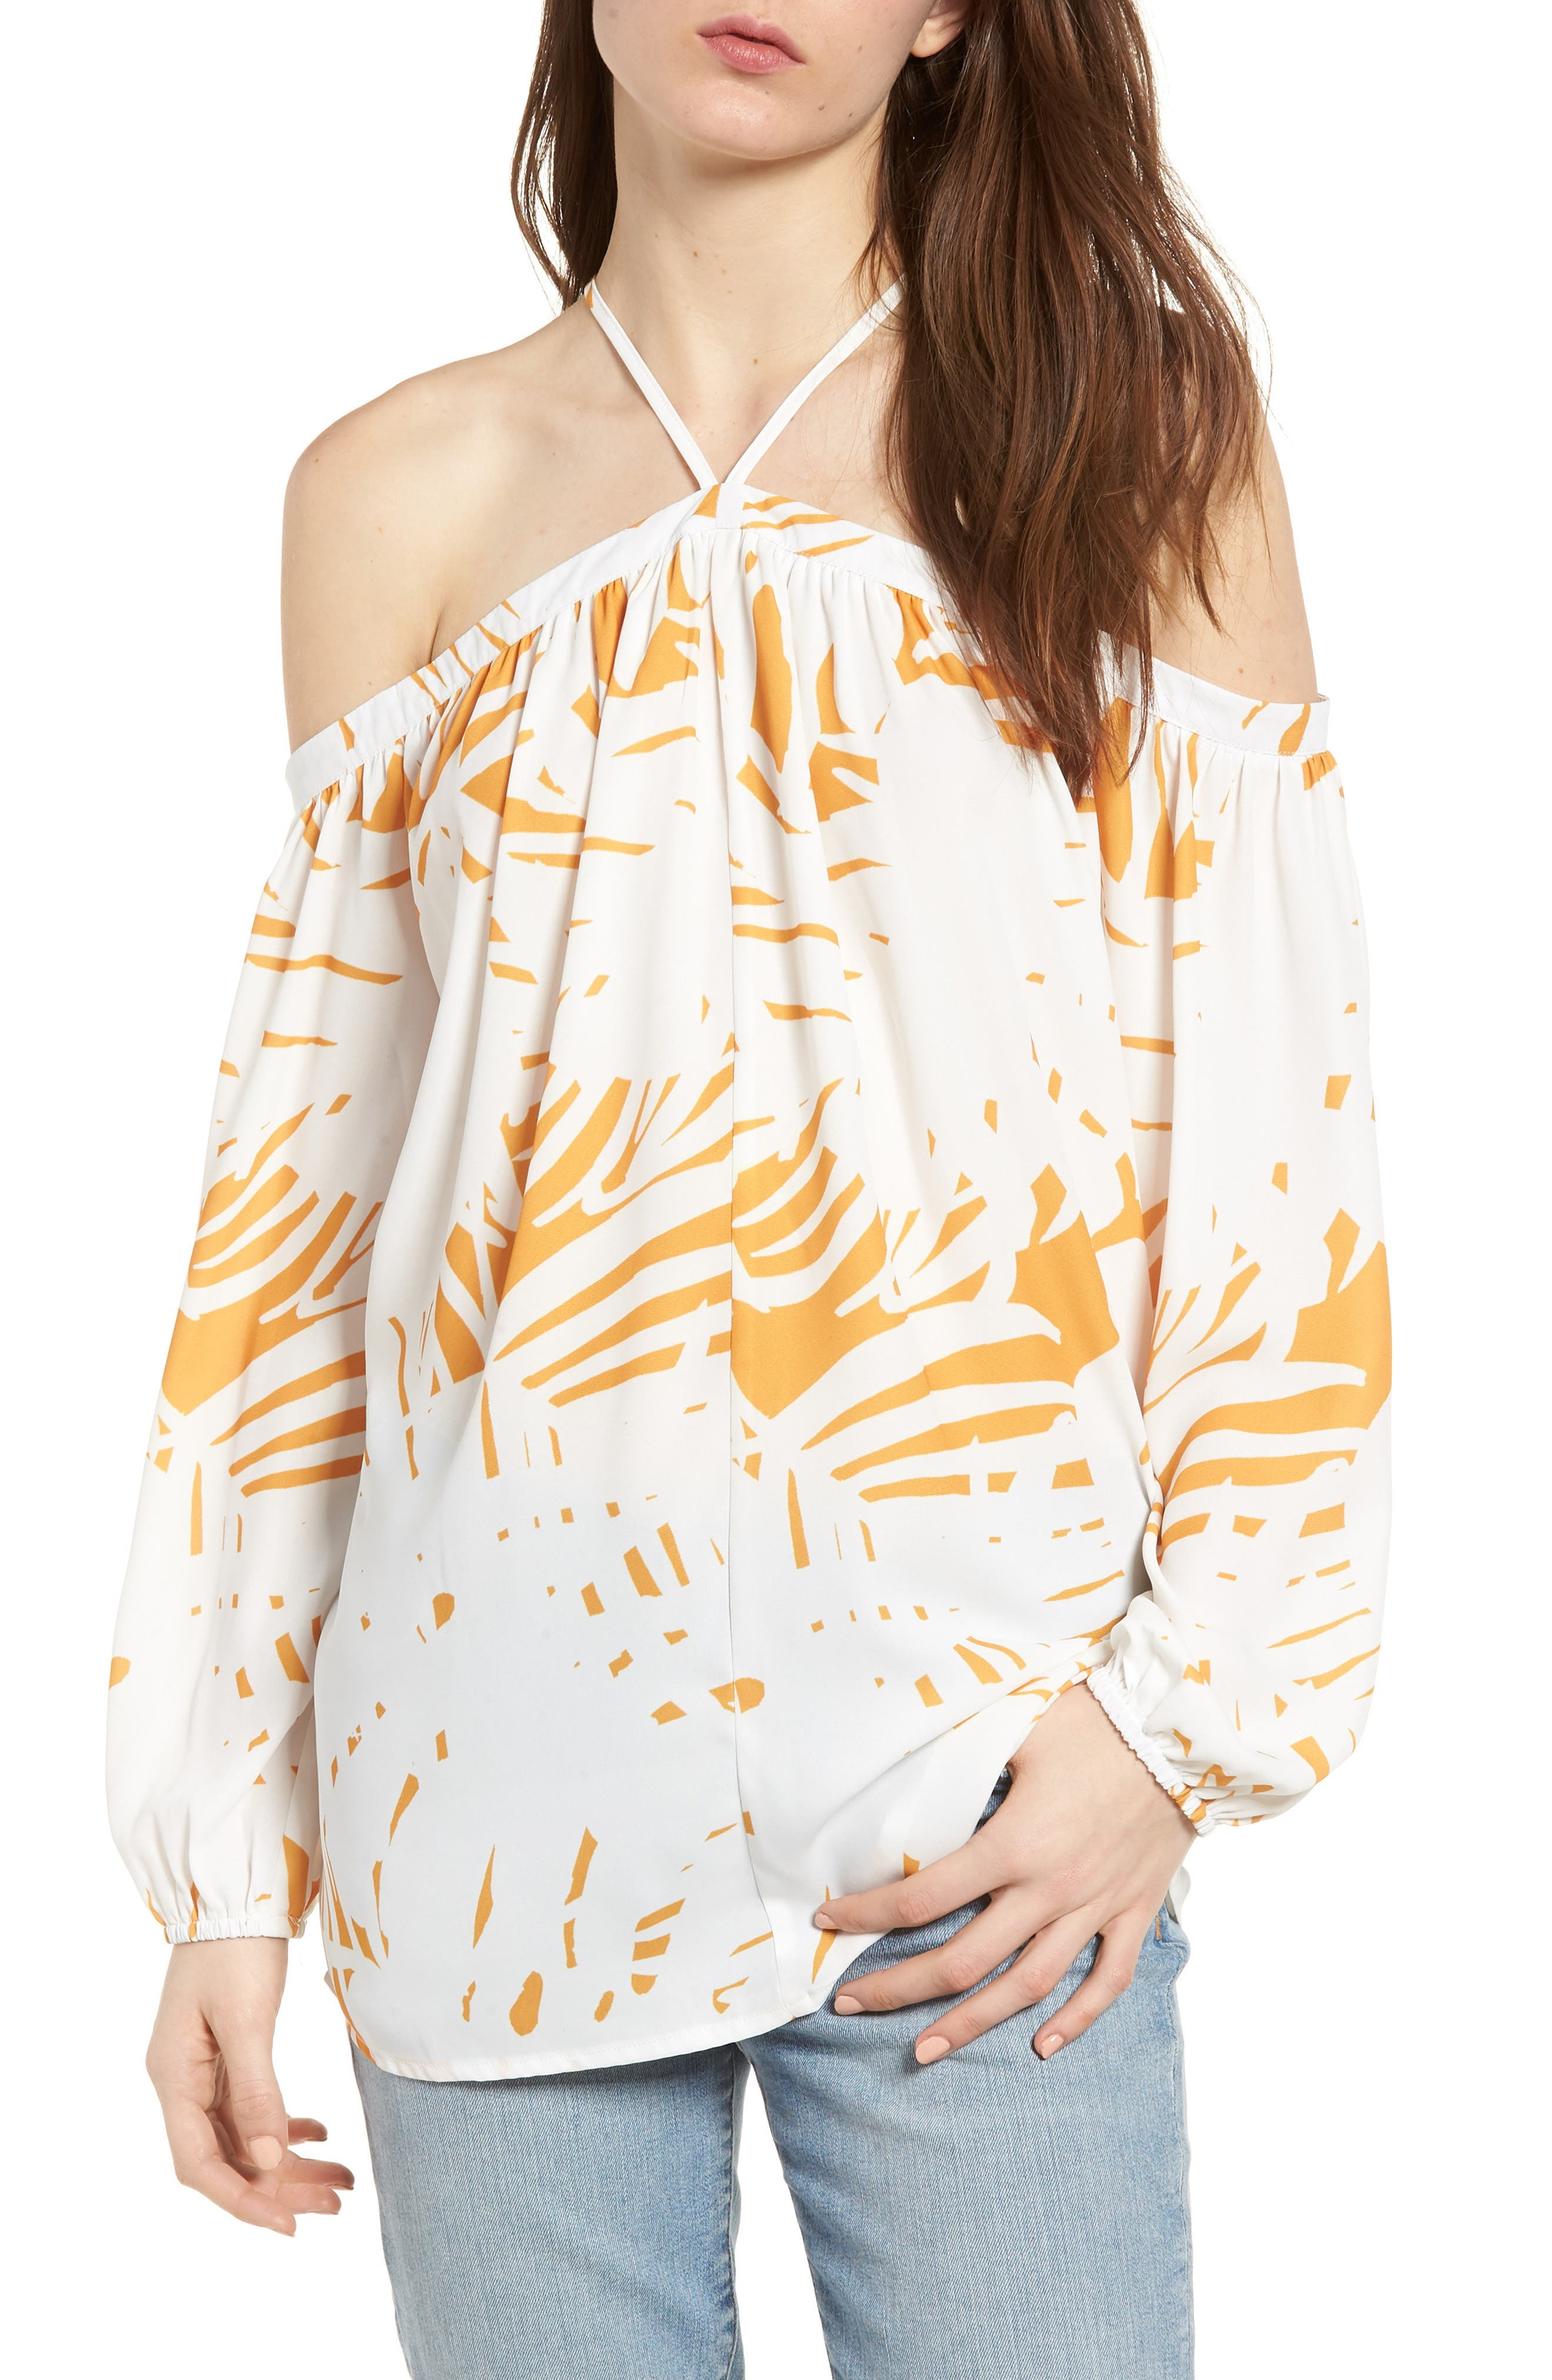 Bishop + Young Ana Palm Print Off the Shoulder Top,                         Main,                         color, Riviera Print